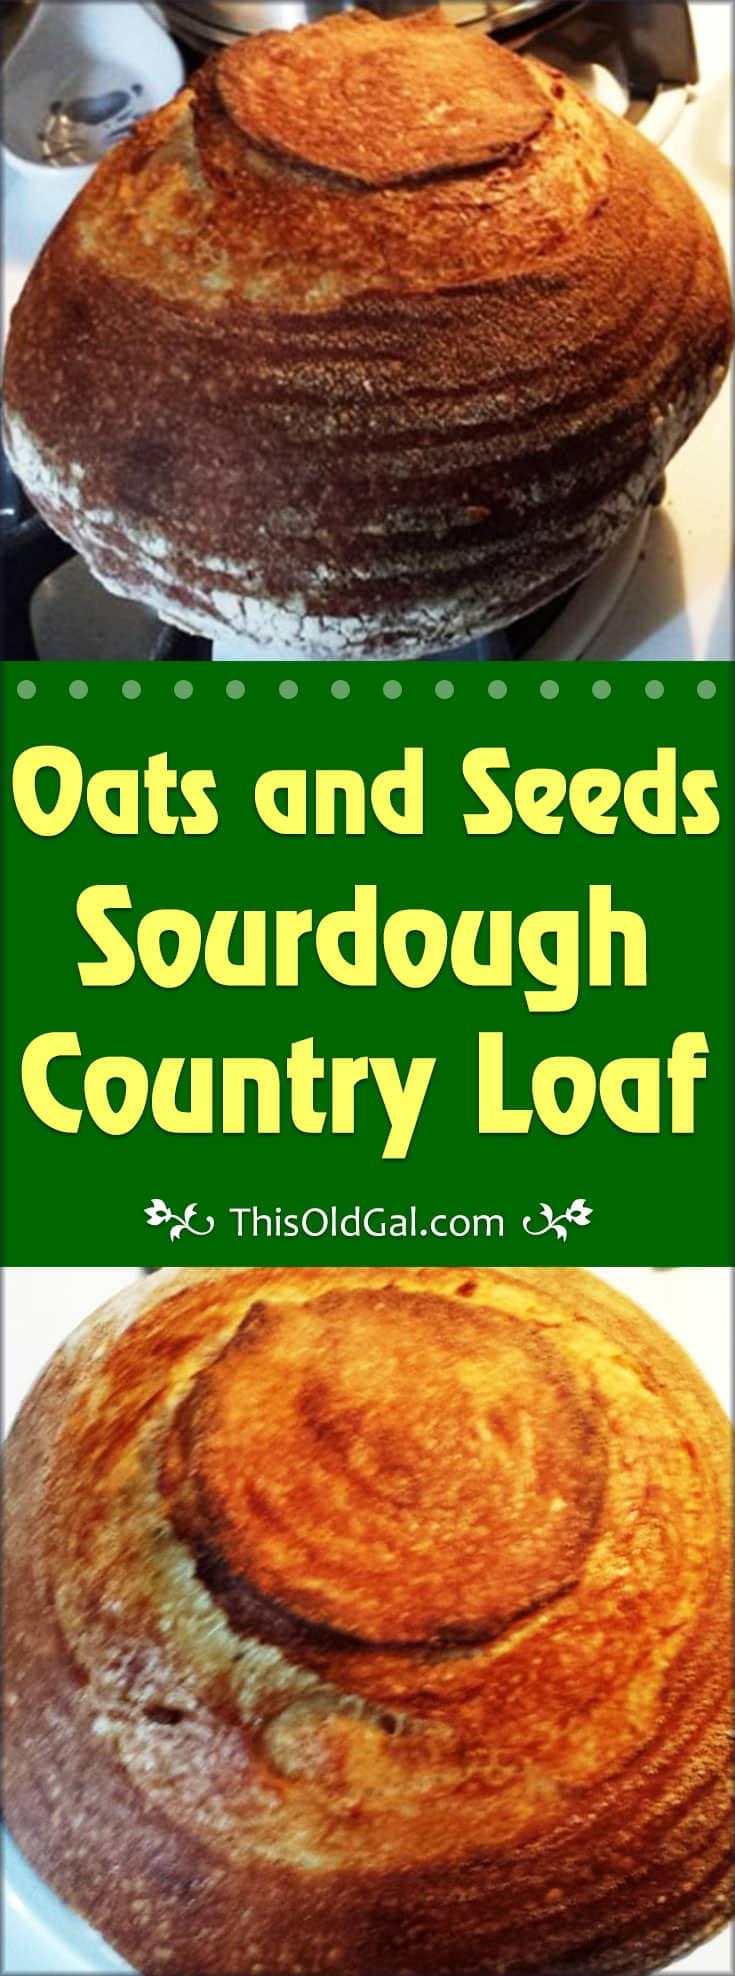 Oats and Seeds Sourdough Country Loaf